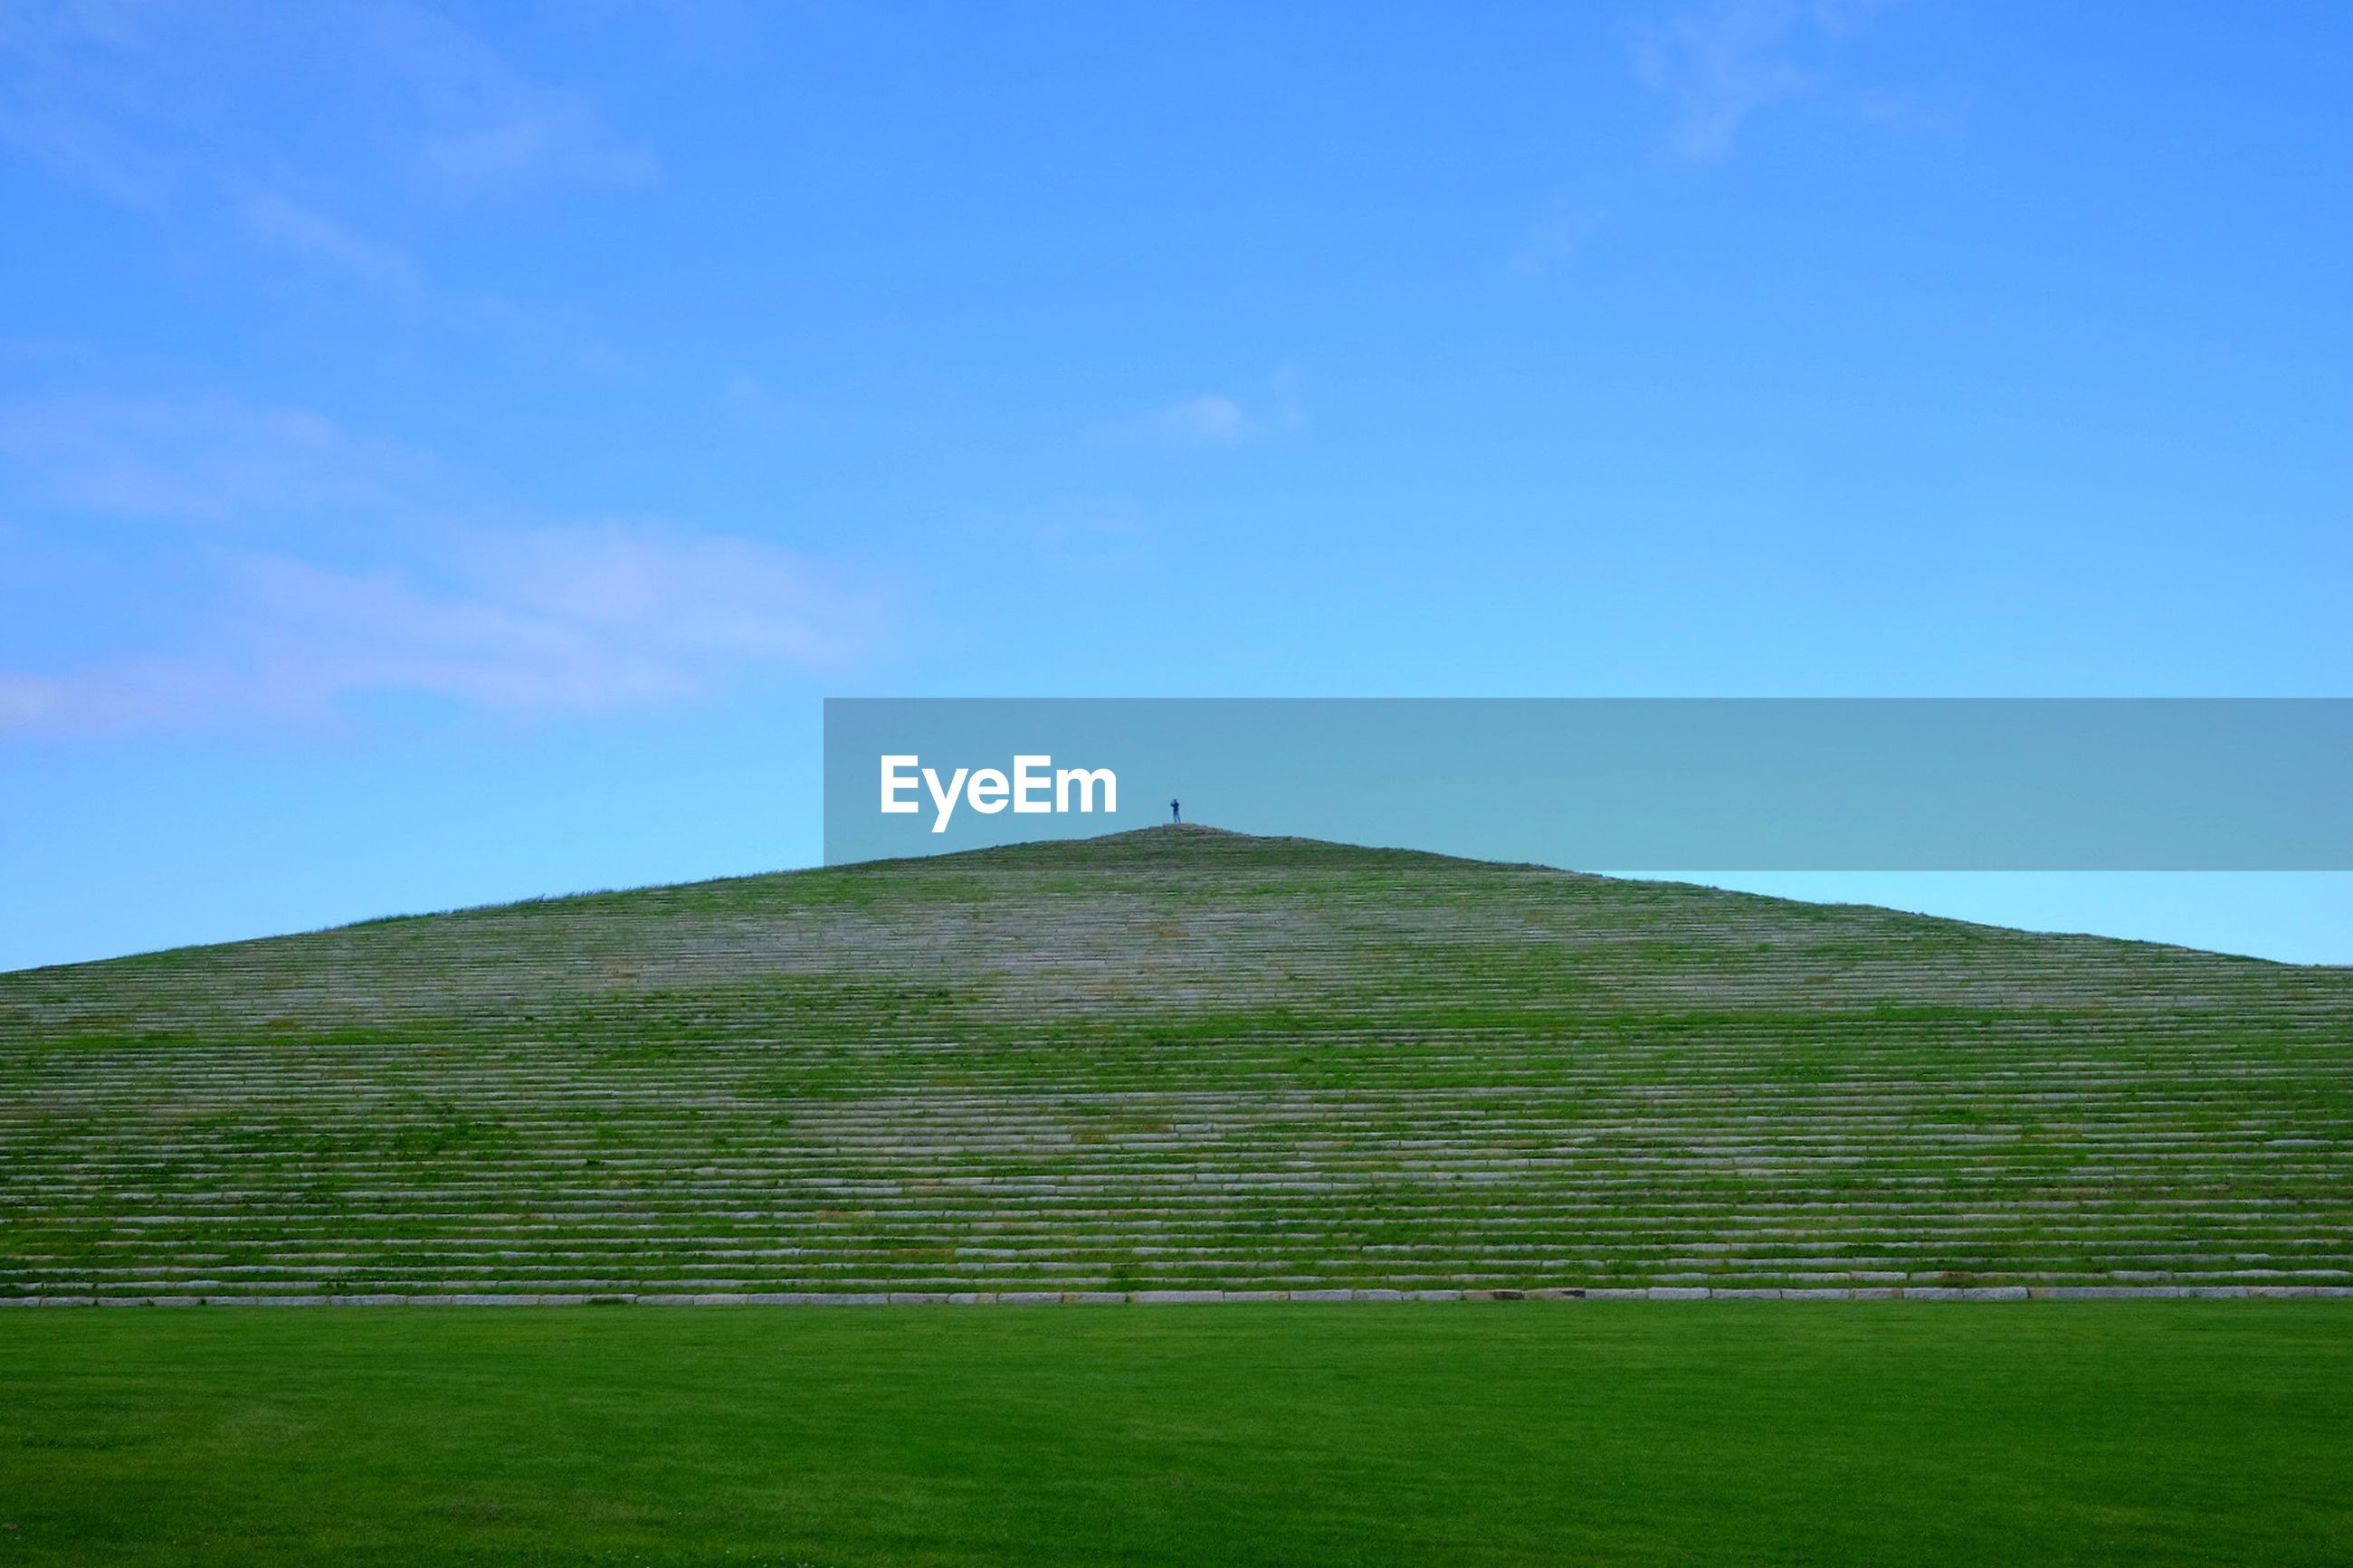 blue, built structure, architecture, grass, building exterior, sky, green color, clear sky, low angle view, copy space, field, landscape, day, outdoors, no people, nature, tranquility, tranquil scene, green, sunlight